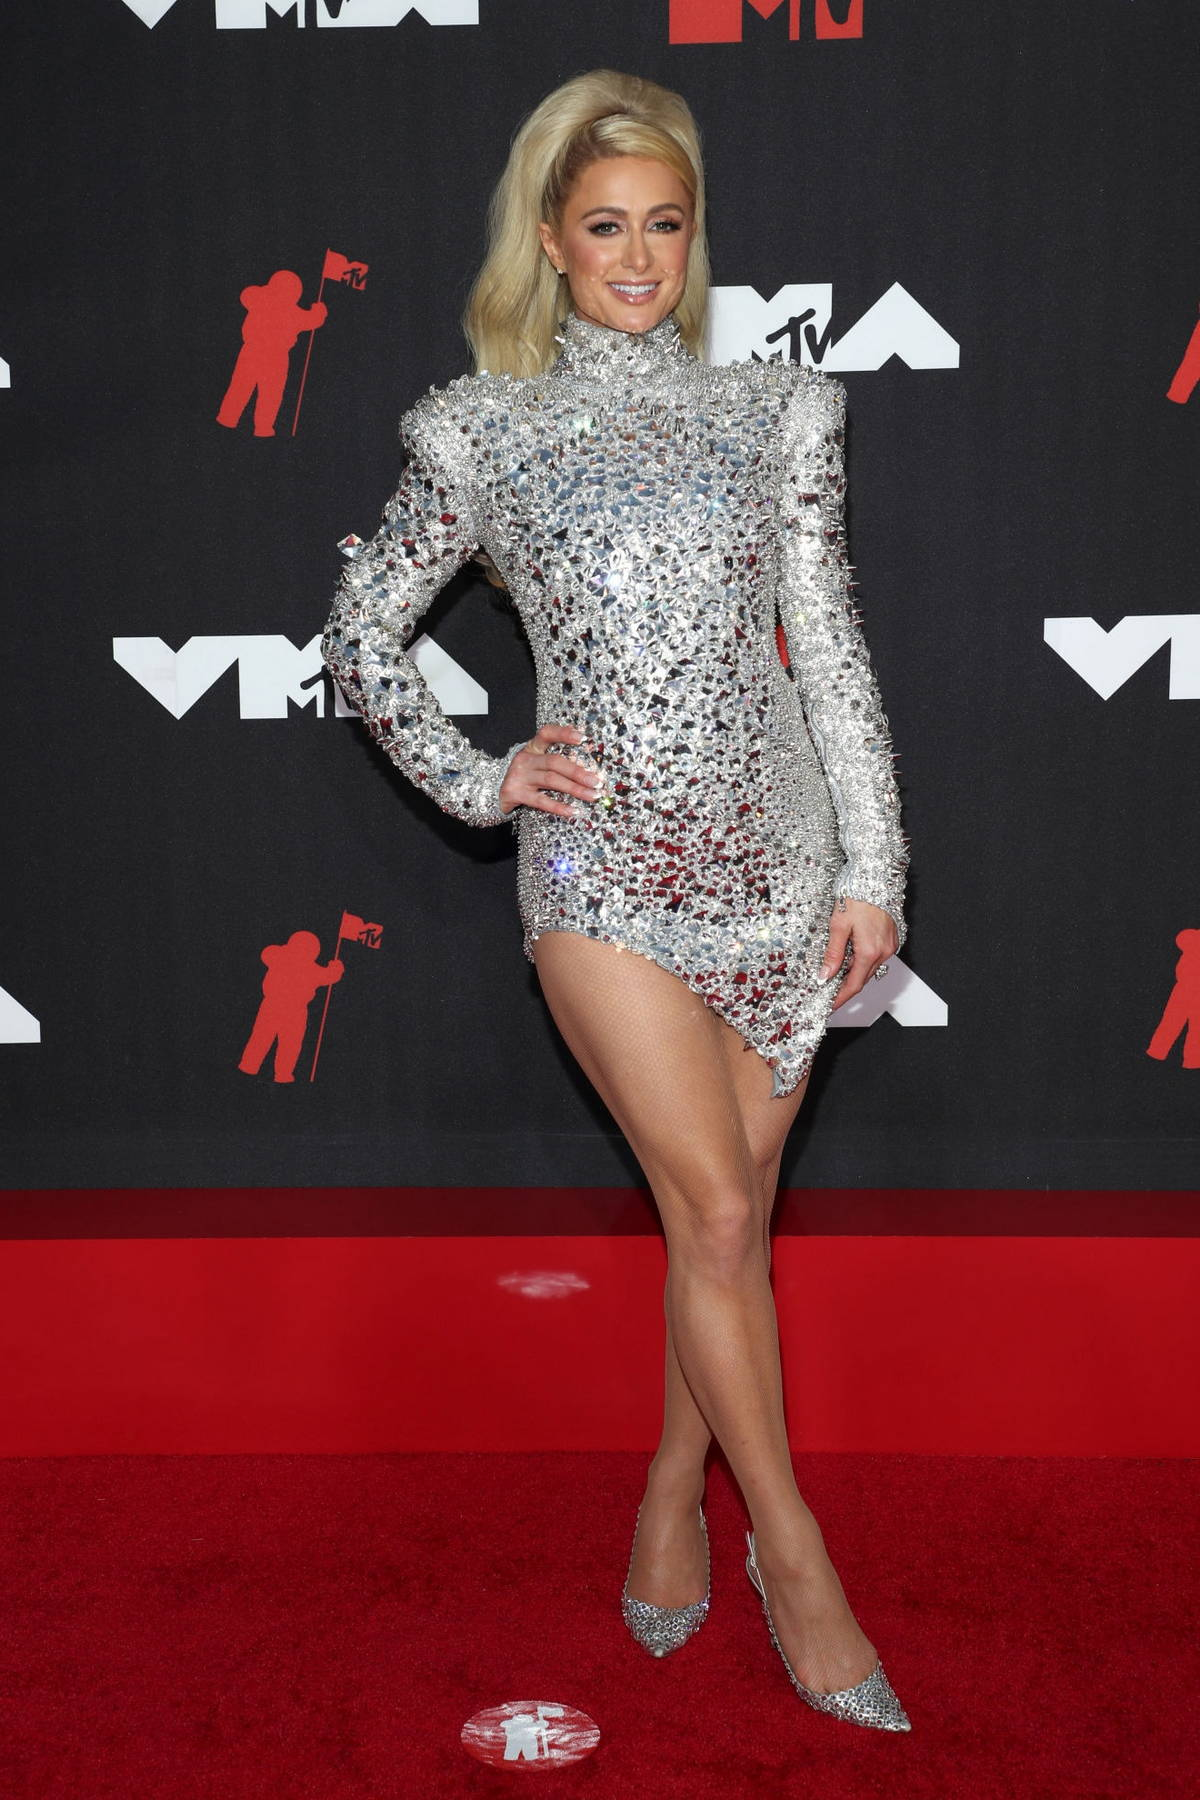 Paris Hilton attends the 2021 MTV Video Music Awards at Barclays Center in Brooklyn, New York City